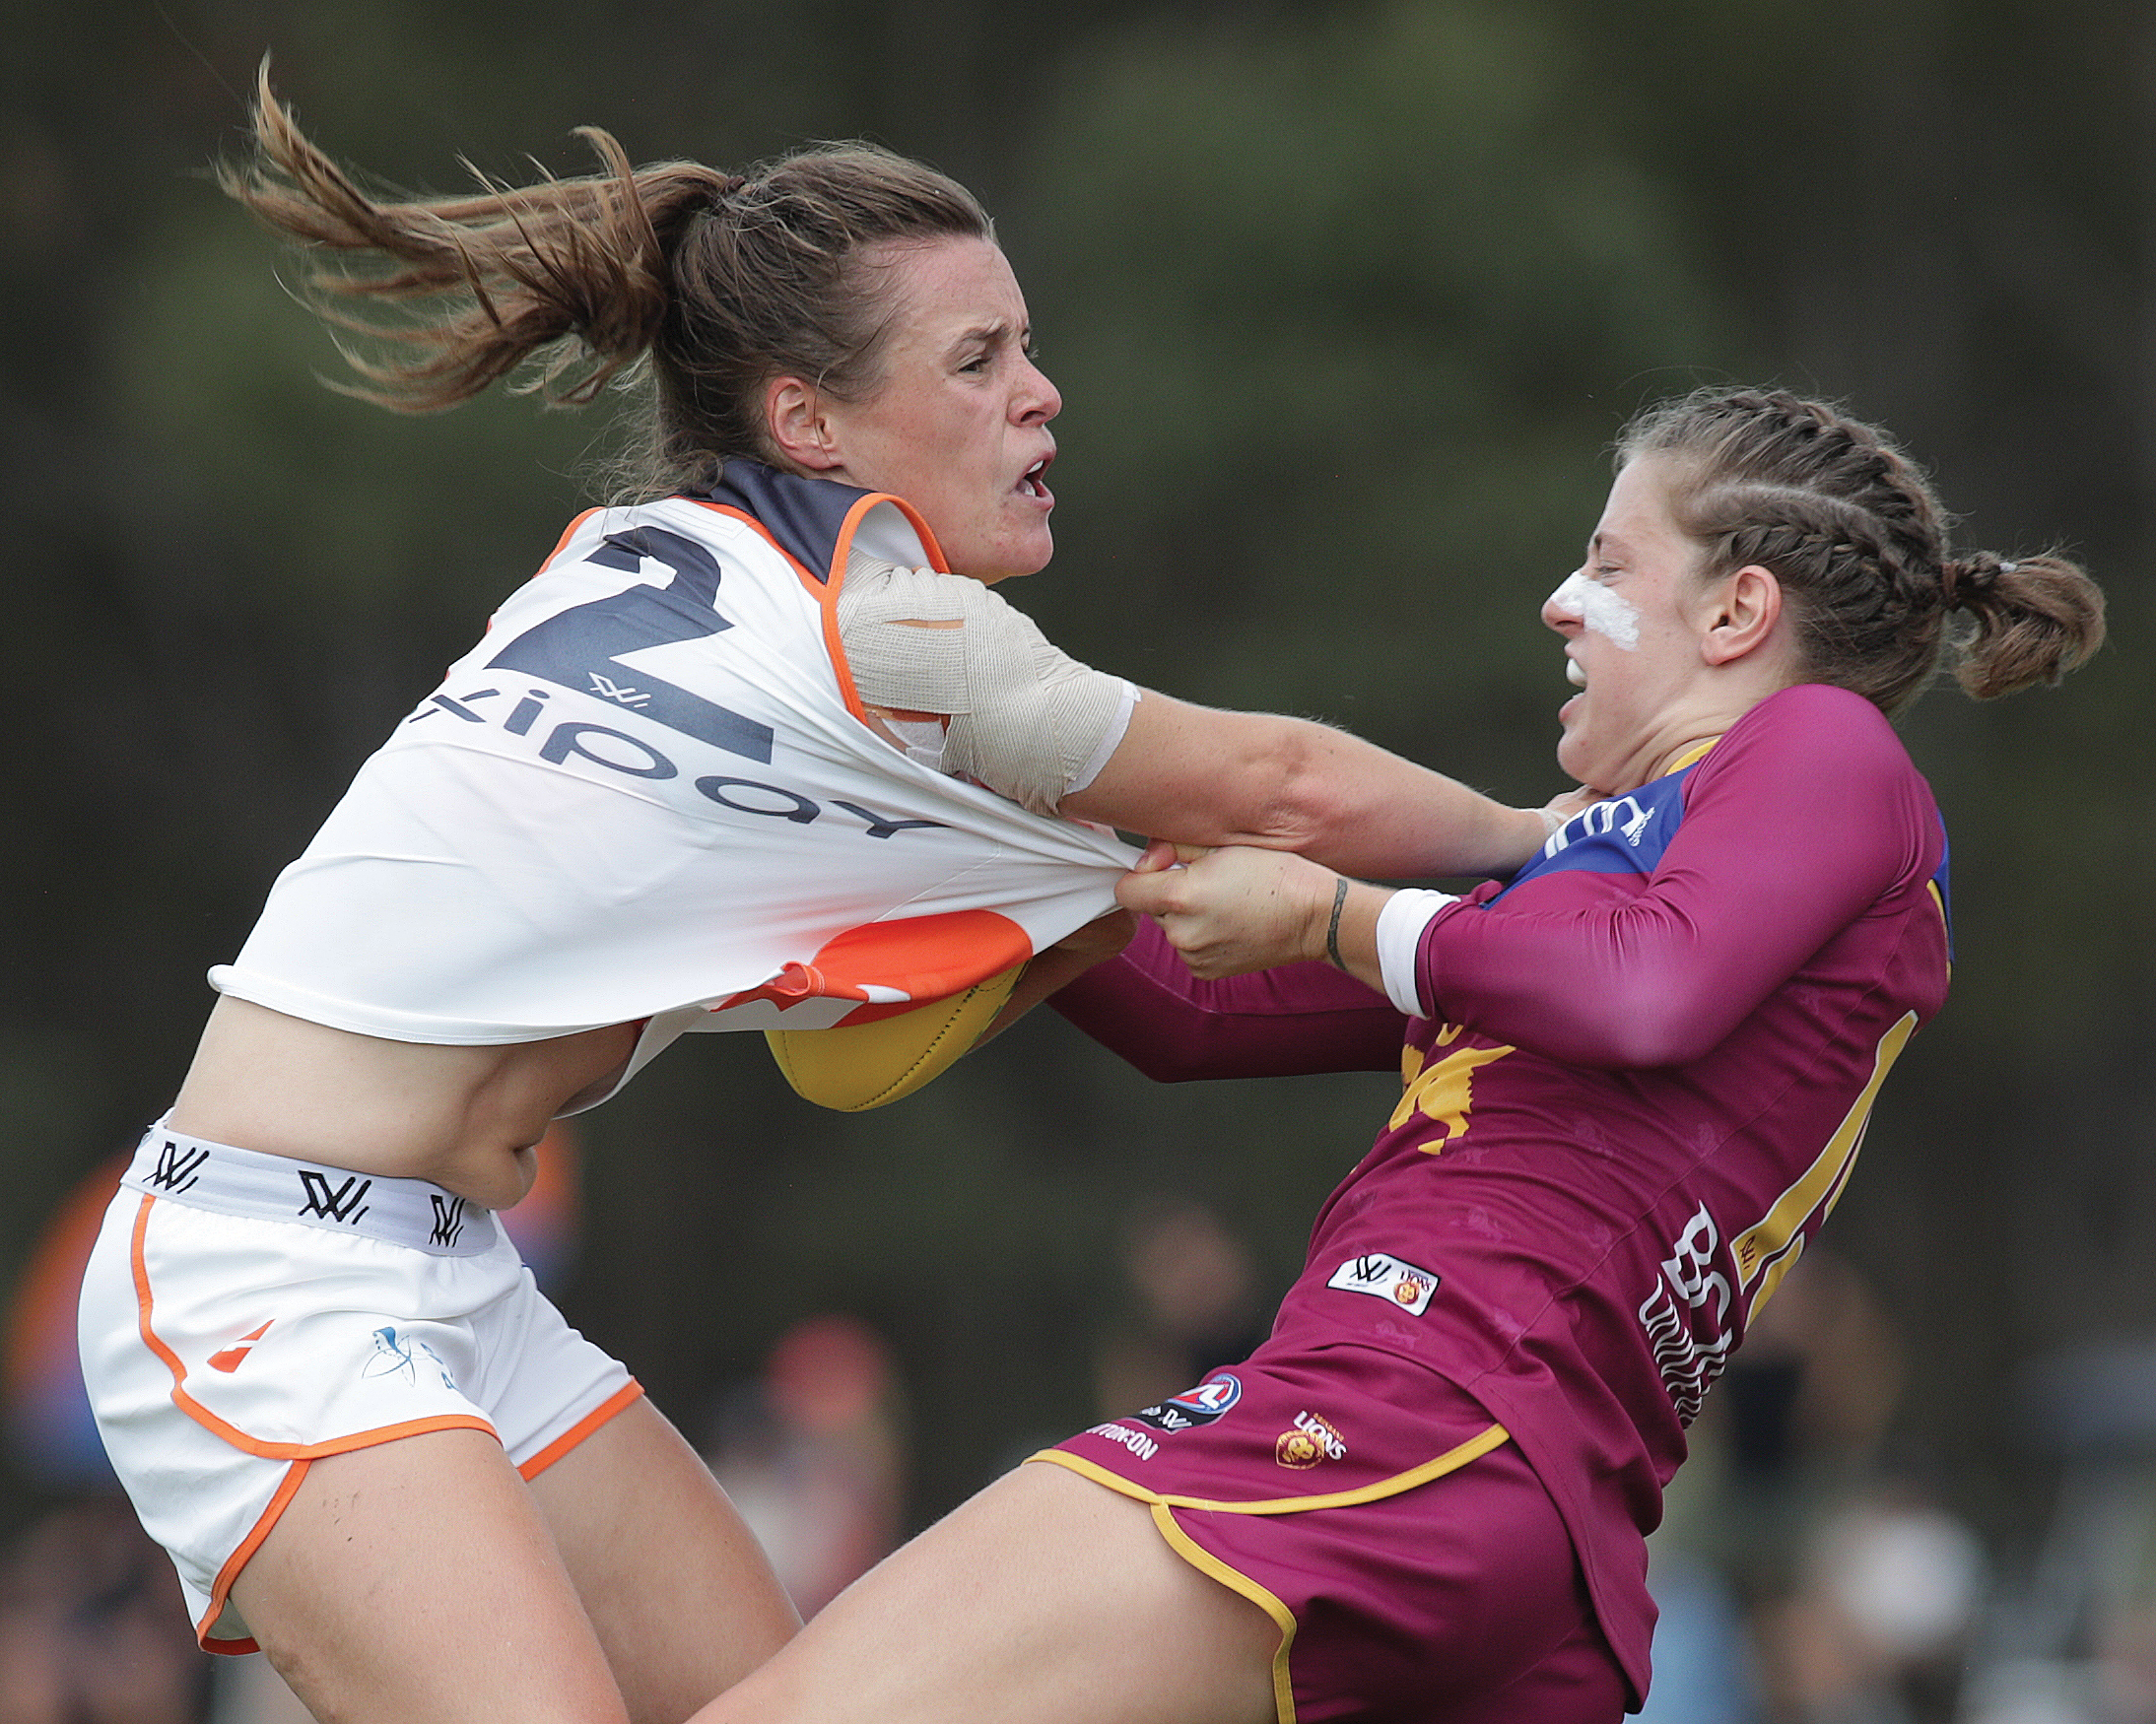 David Layden  'Don't Argue'  Alicia Eva fends off a tackle from Lions Nat Exon, QLD AFLW